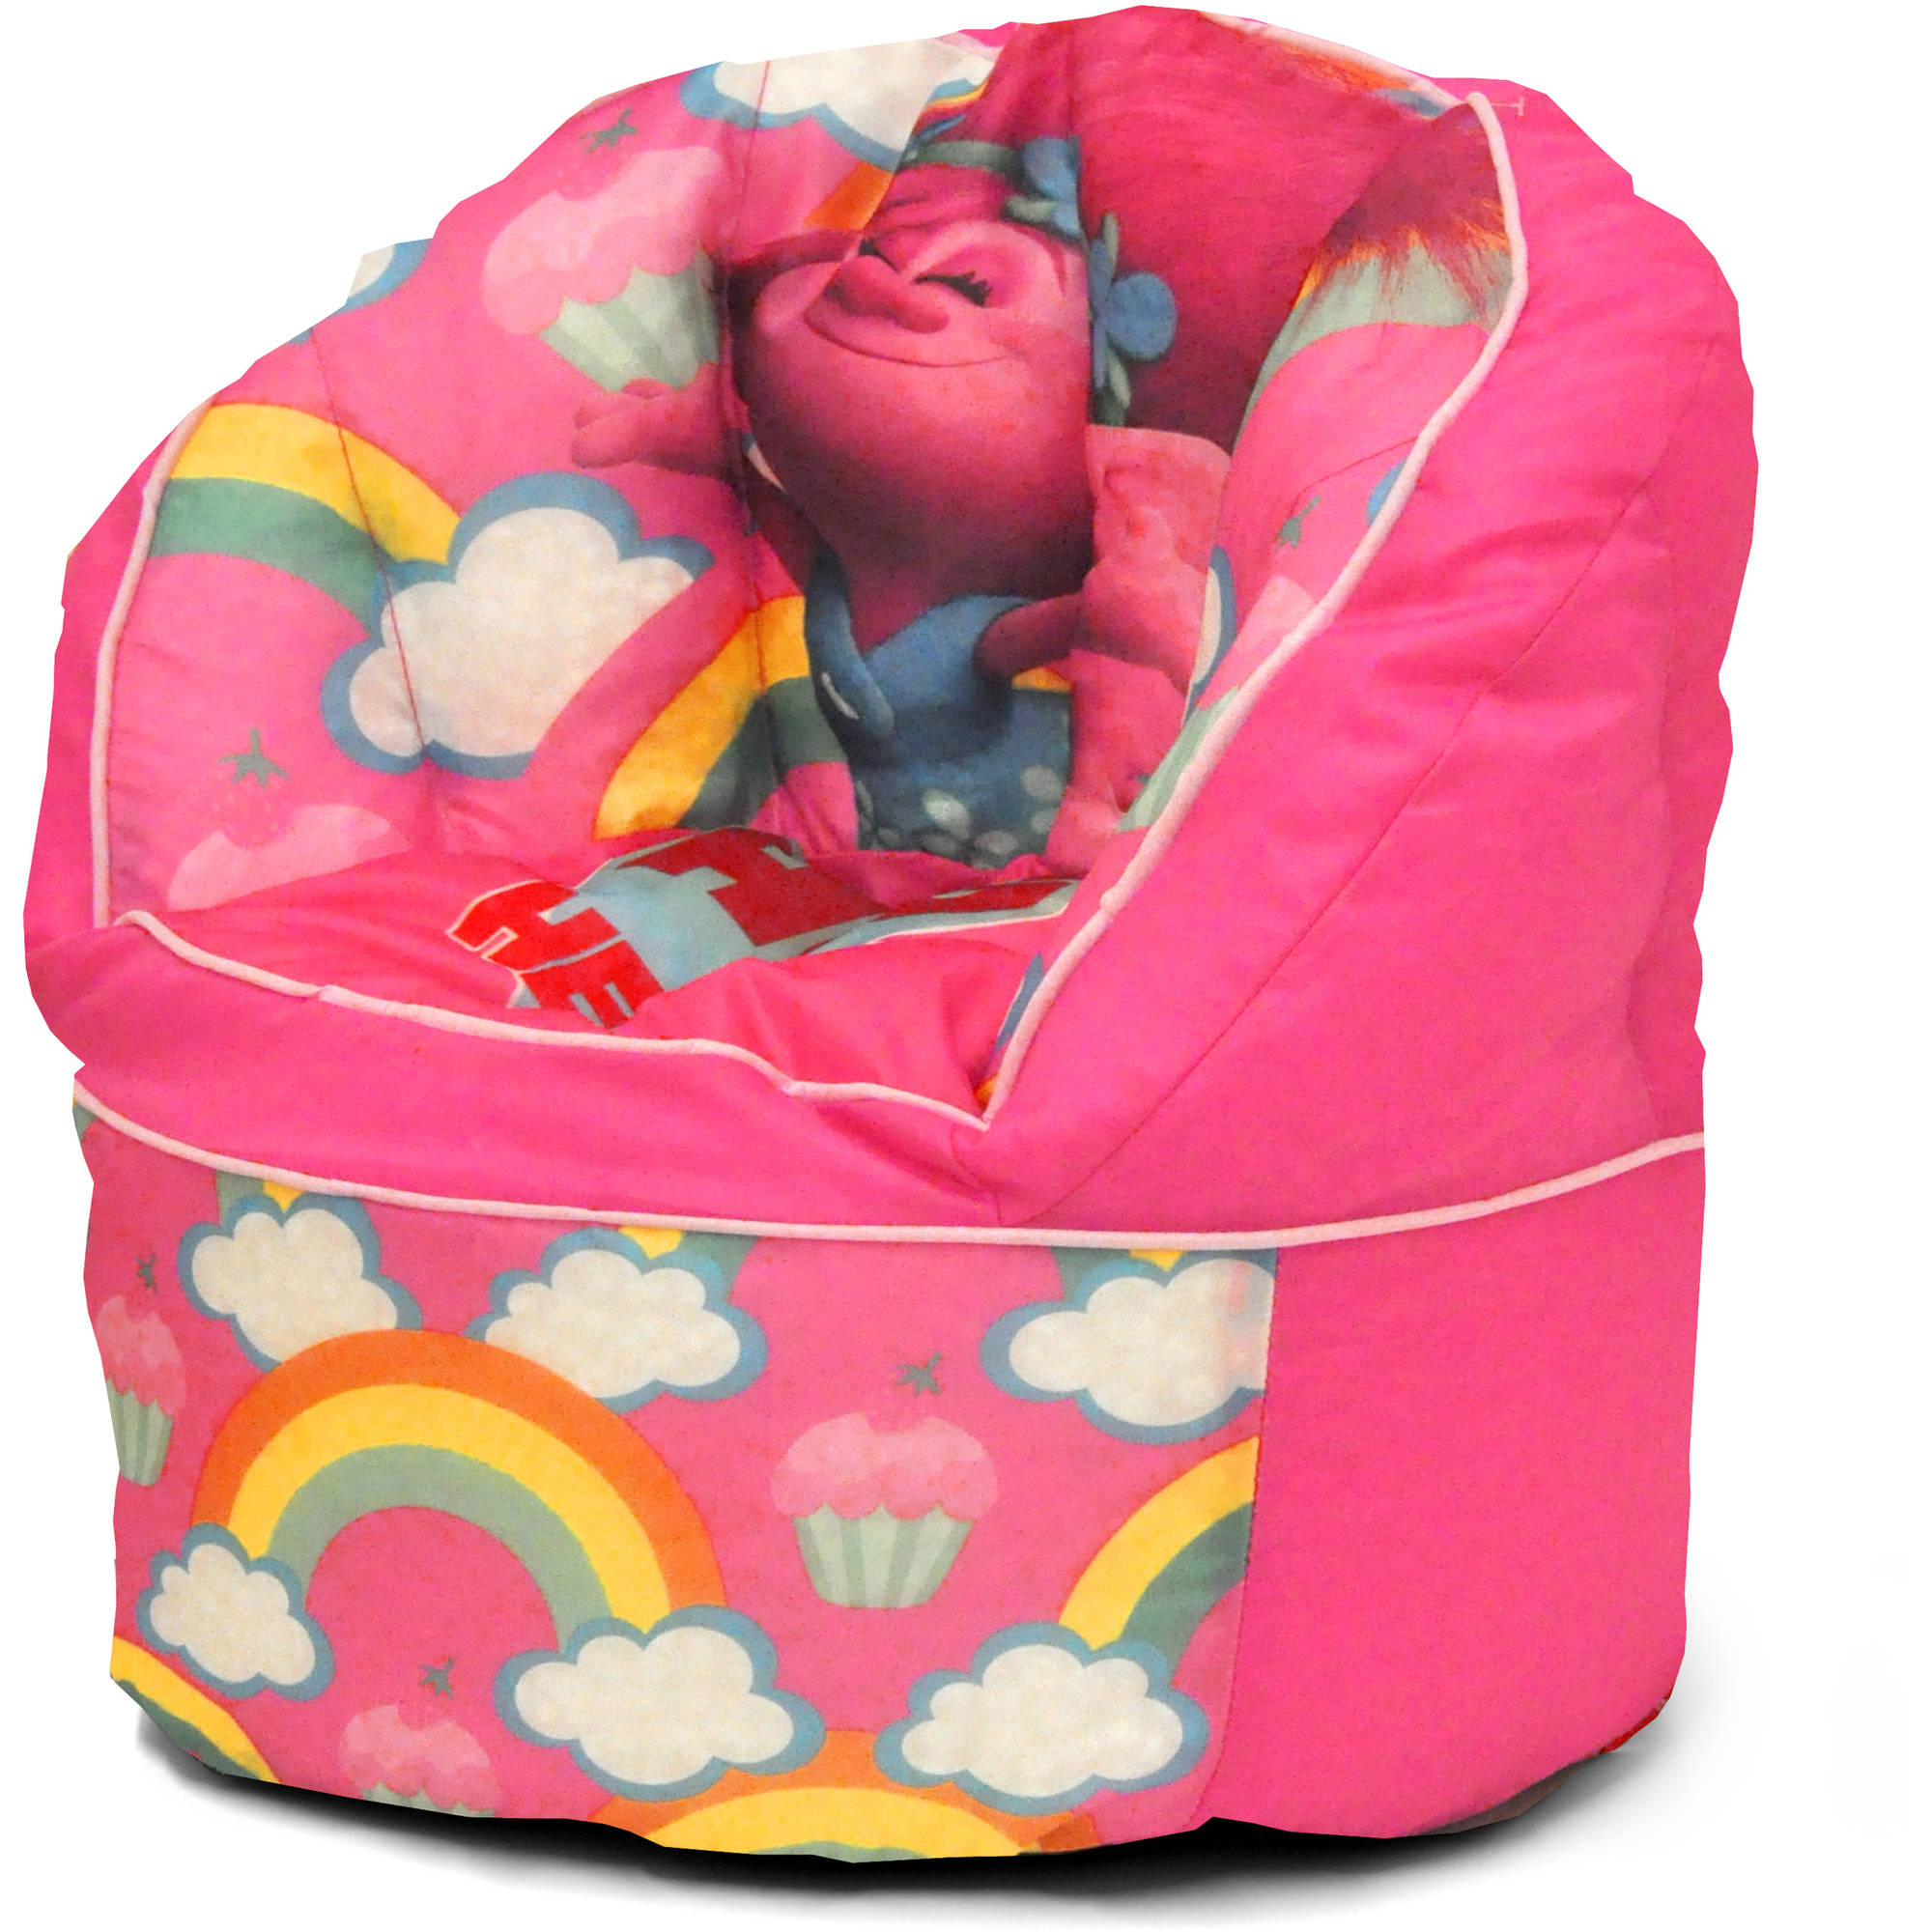 Trolls Bean Bag Chair, Pink